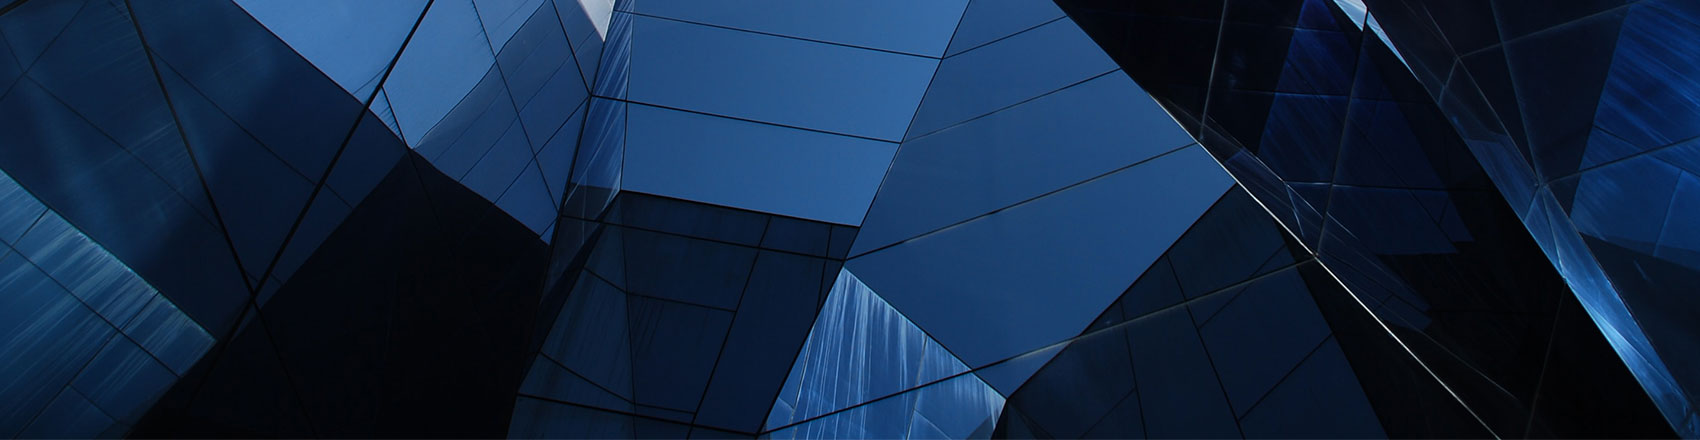 An angular glass building reflecting itself in a series of polygonal shapes.